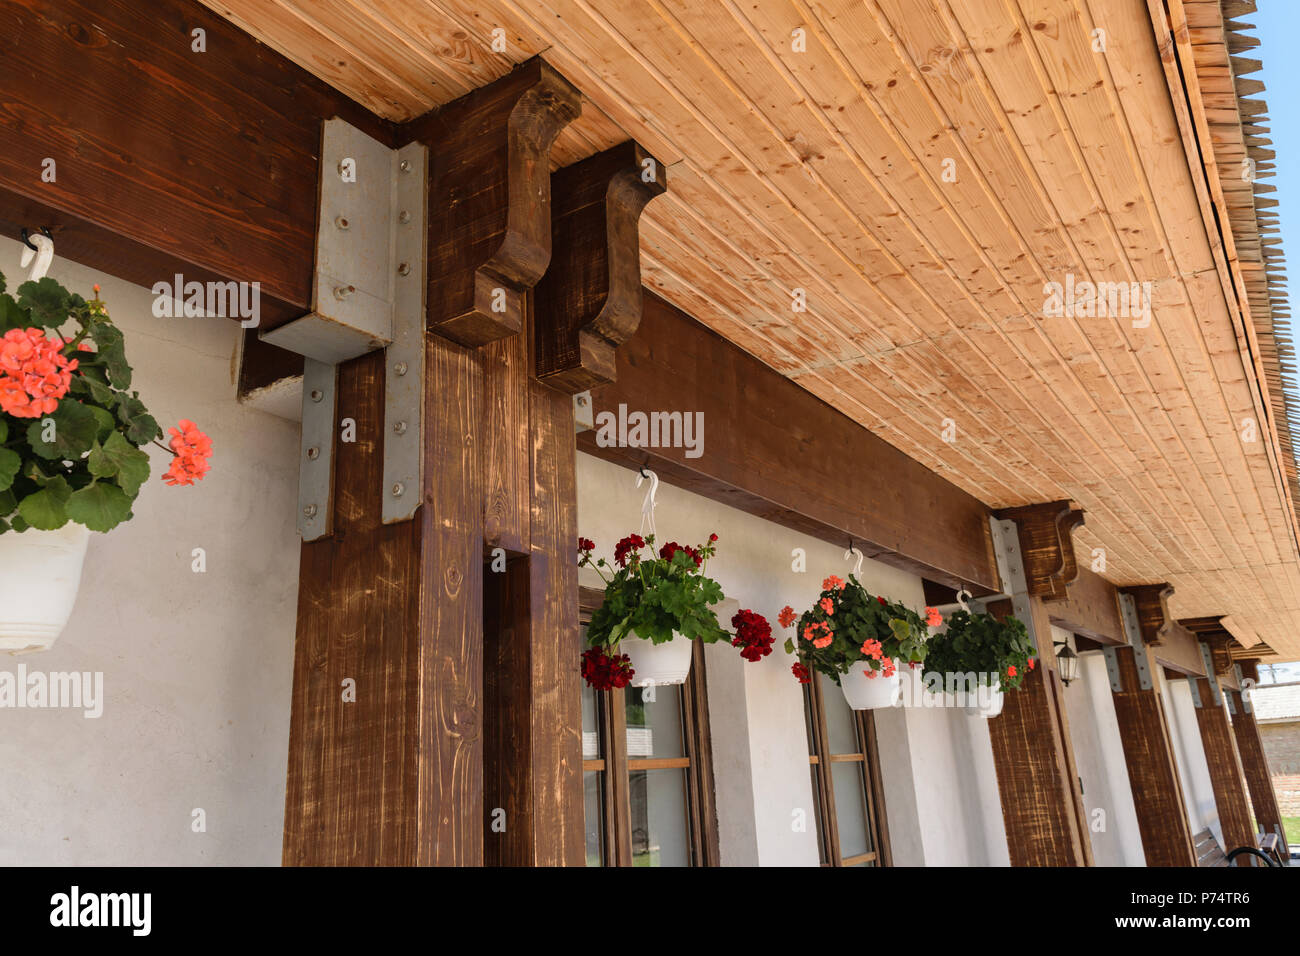 closeup of wood beam and pillar junction professionally connected by metal screw plate. Exterior roof support structure and geranium pots hanging - Stock Image